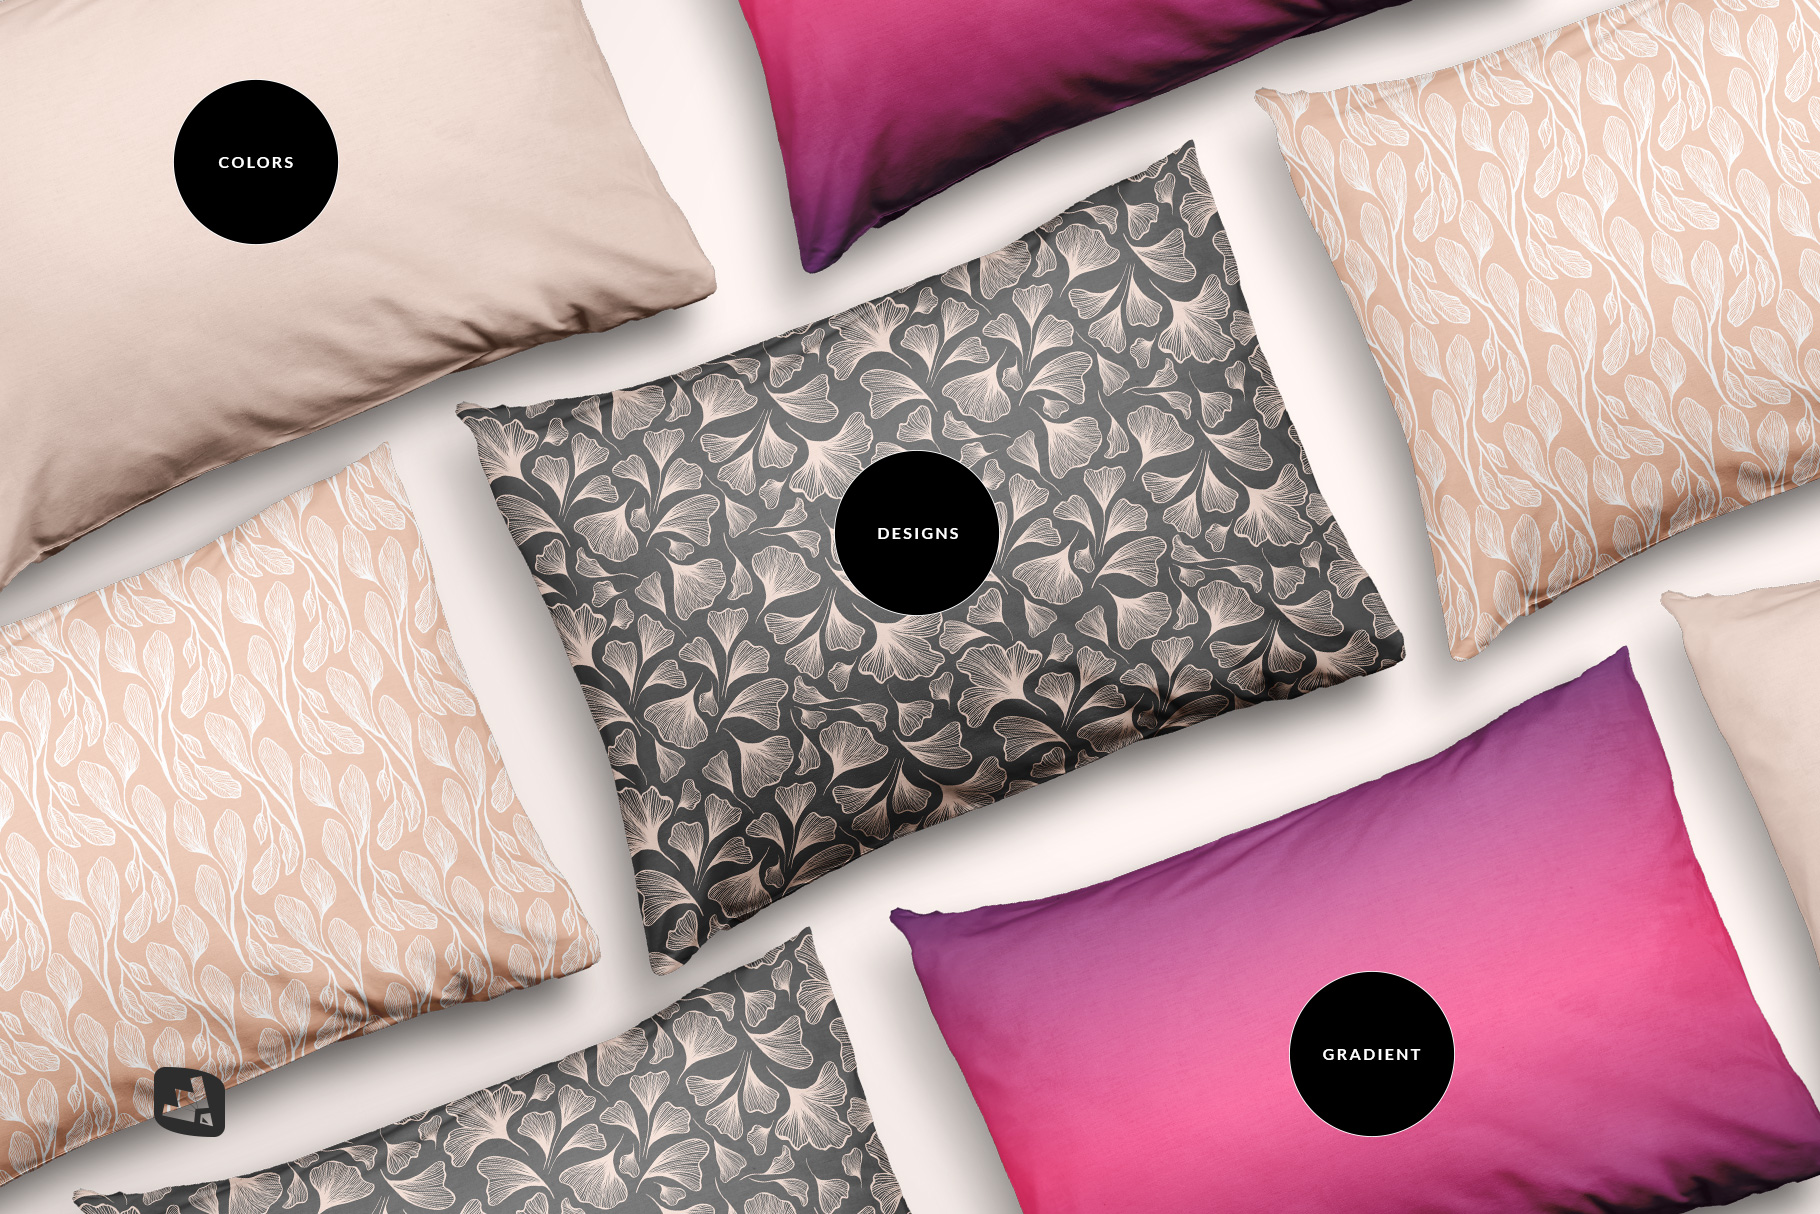 types of the set of cotton pillow case mockup